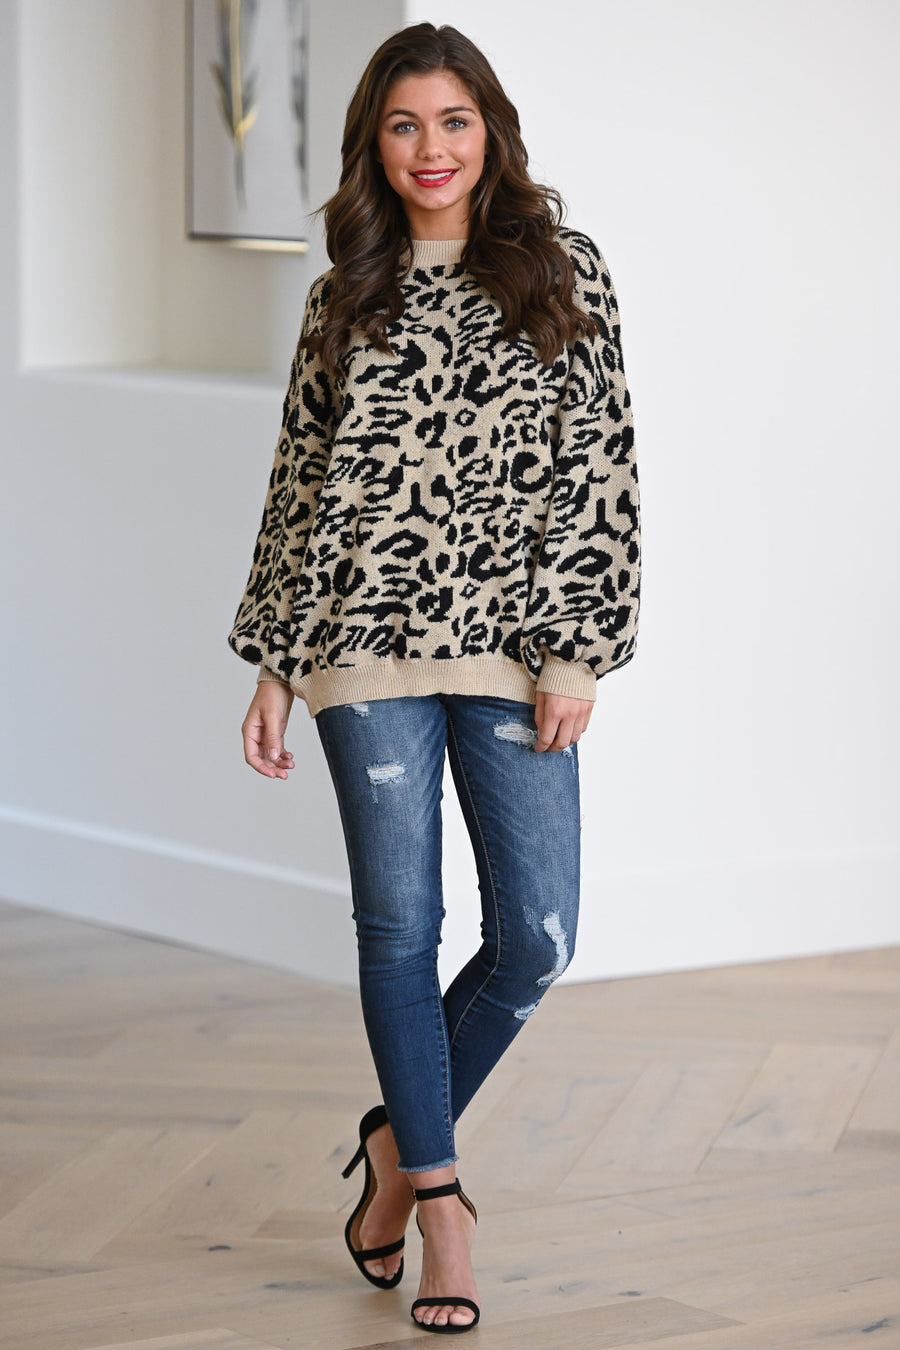 Feisty Fashionista Leopard Sweater - Tan women's animal print sweater, Closet Candy Boutique 1